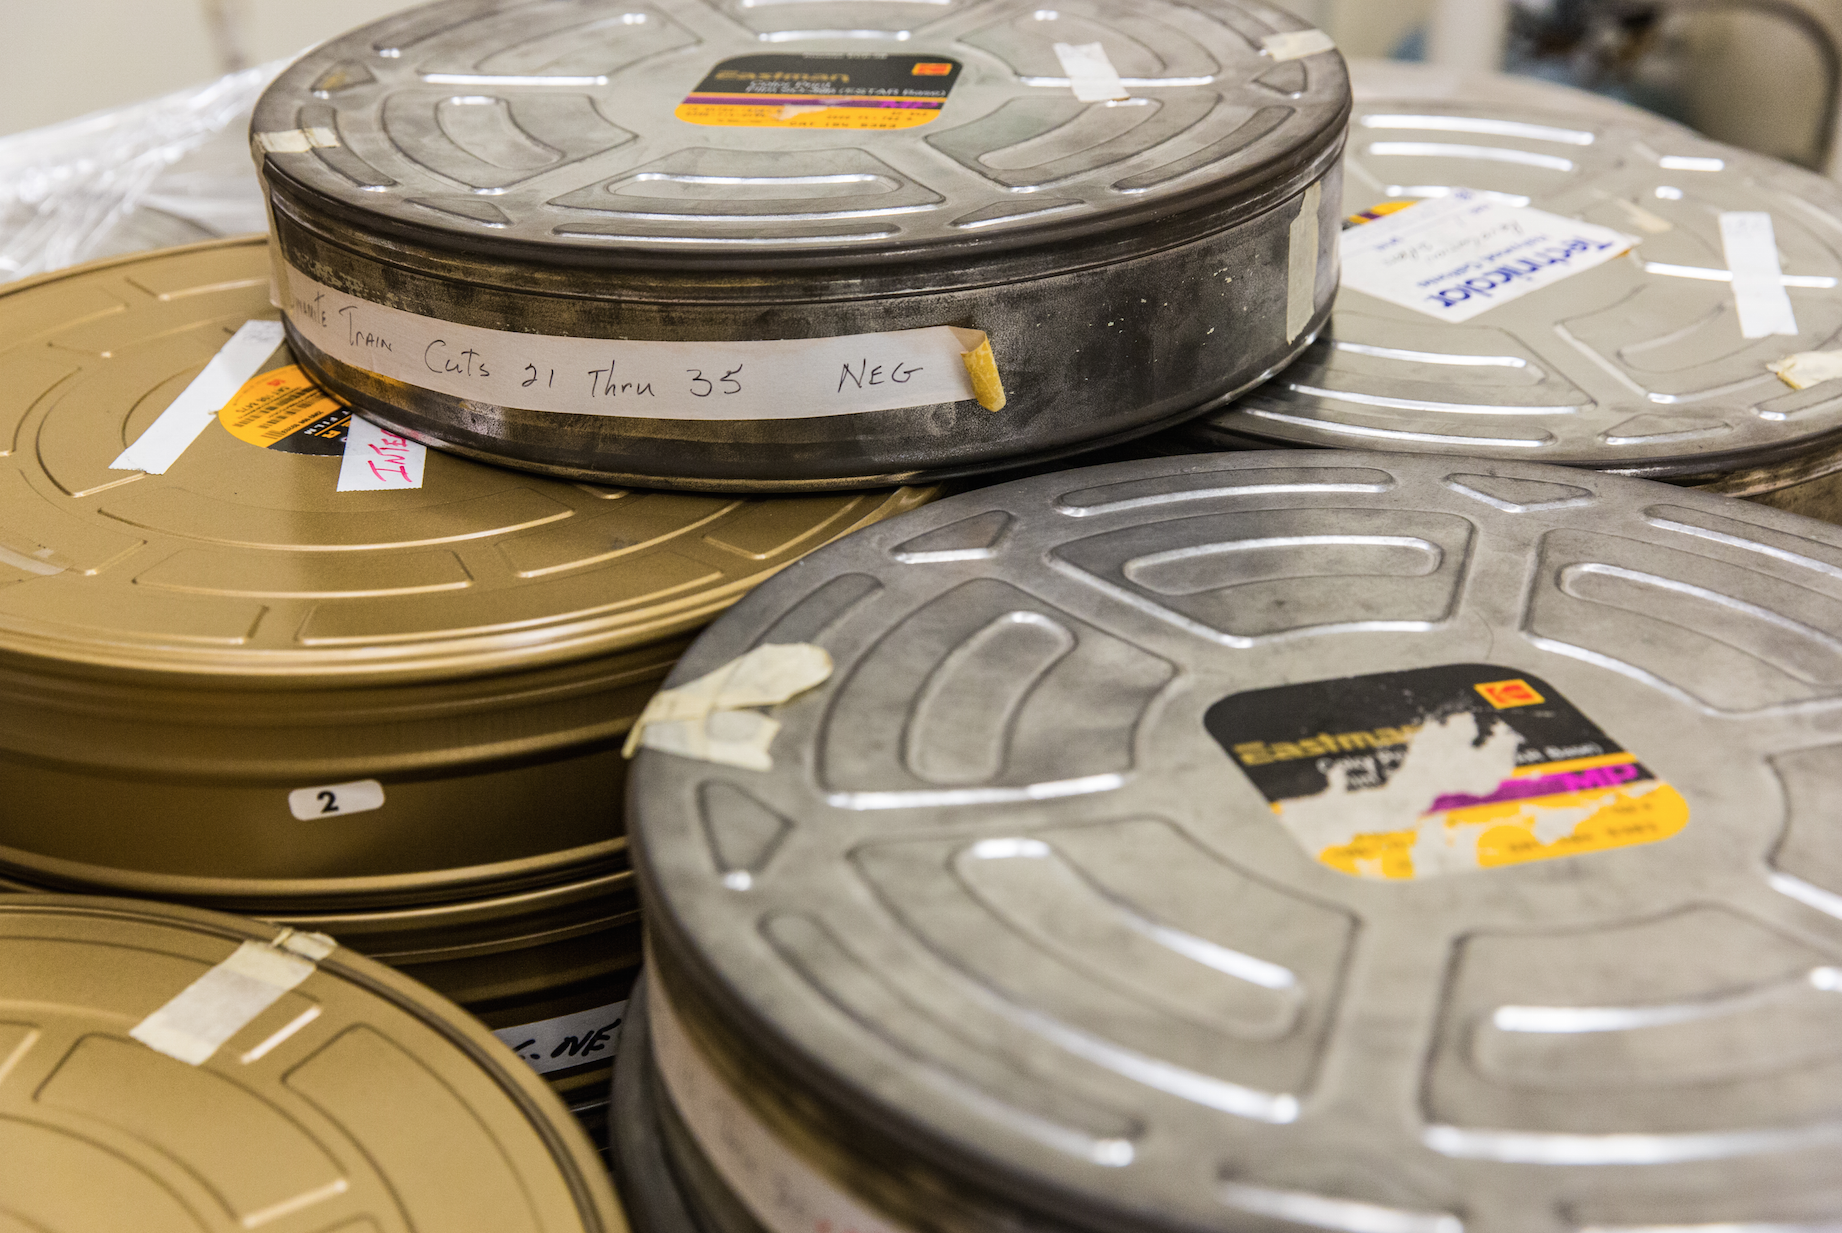 Stacks of 70mm film cans, waiting to be inventoried, catalogued, and placed in new archival cans